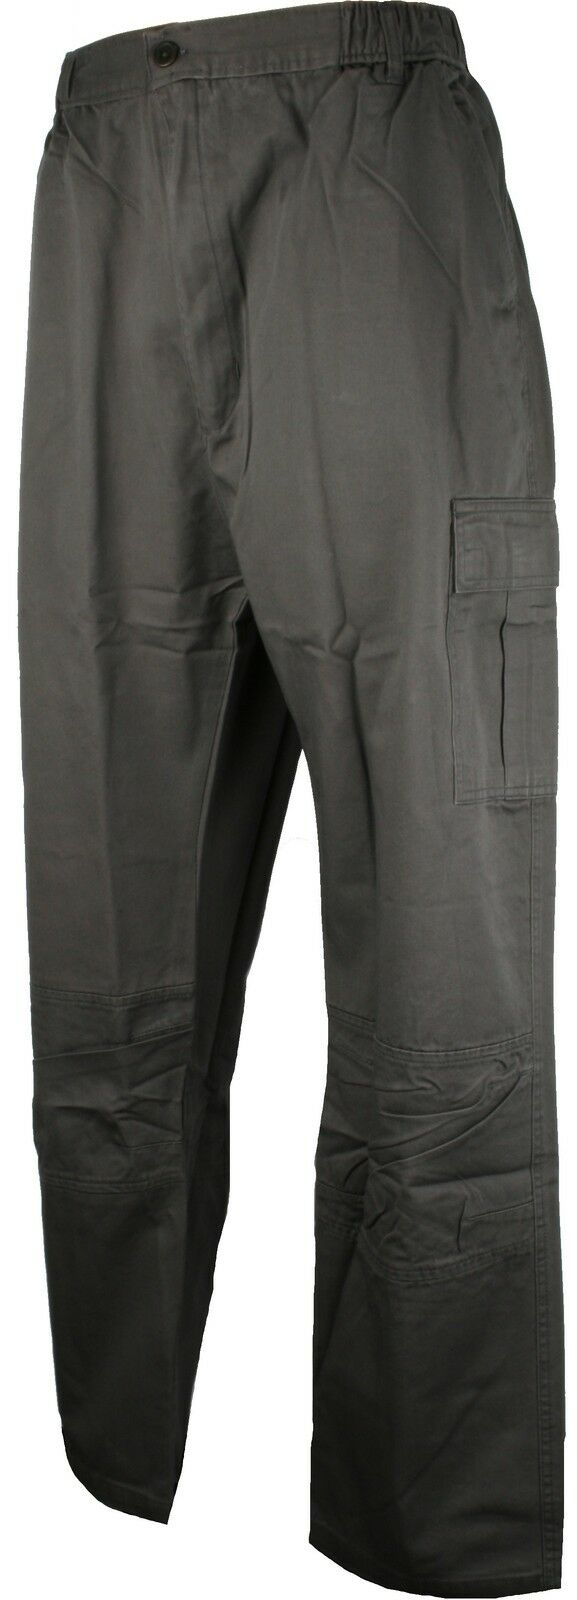 Perfect Collection Cotton Full Length Cargo Trousers Dark Grey 31 inch Leg